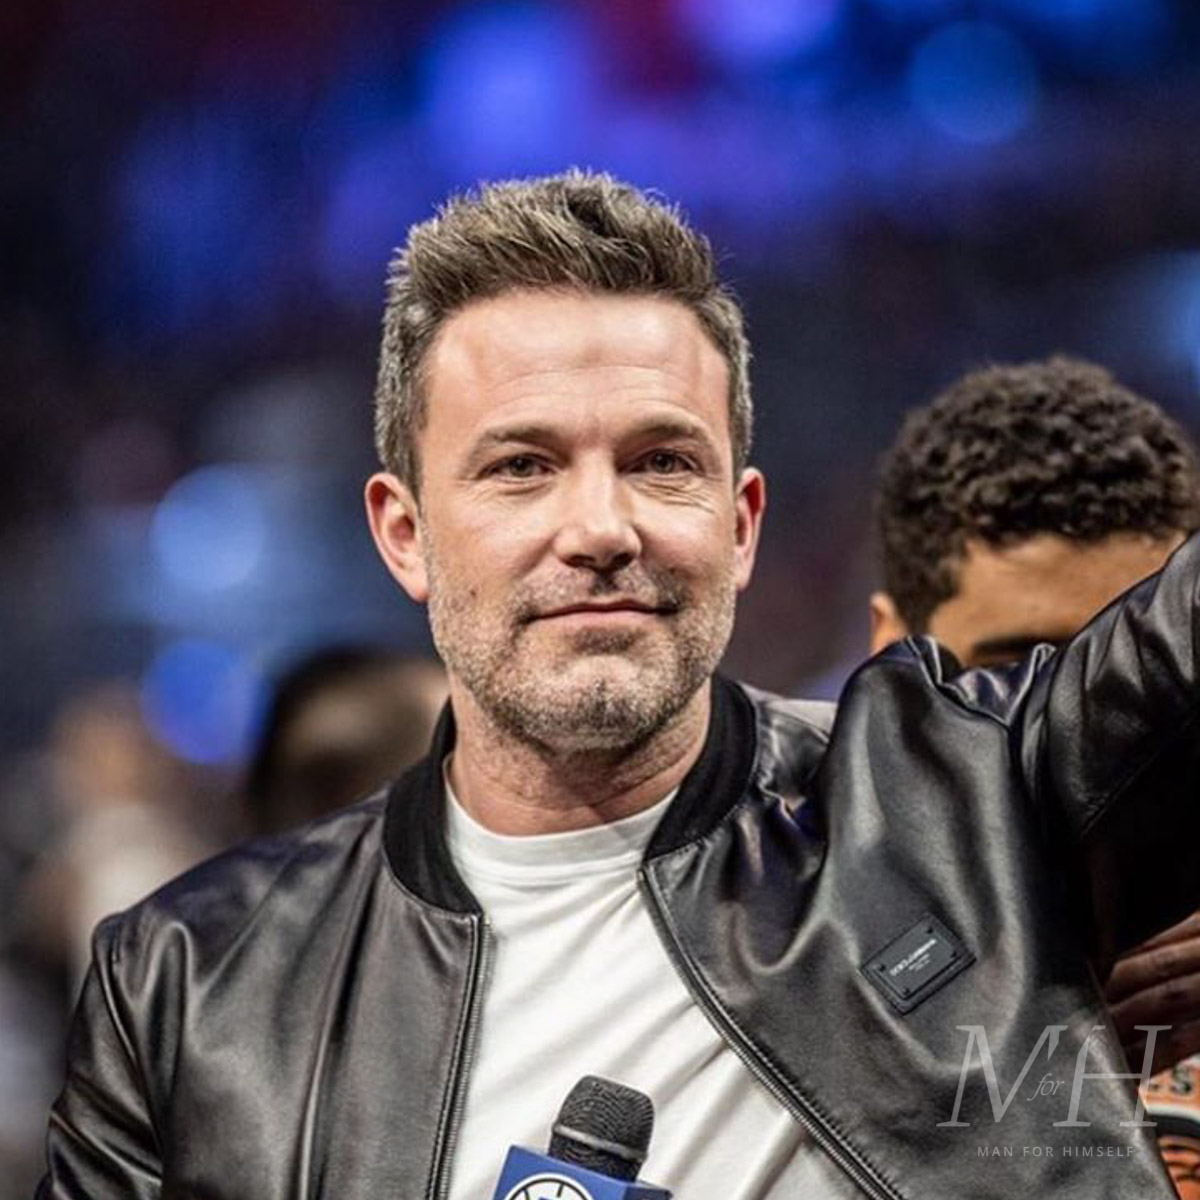 ben-affleck-hairstyle-greying-hair-grooming-MFHC43-man-for-himself